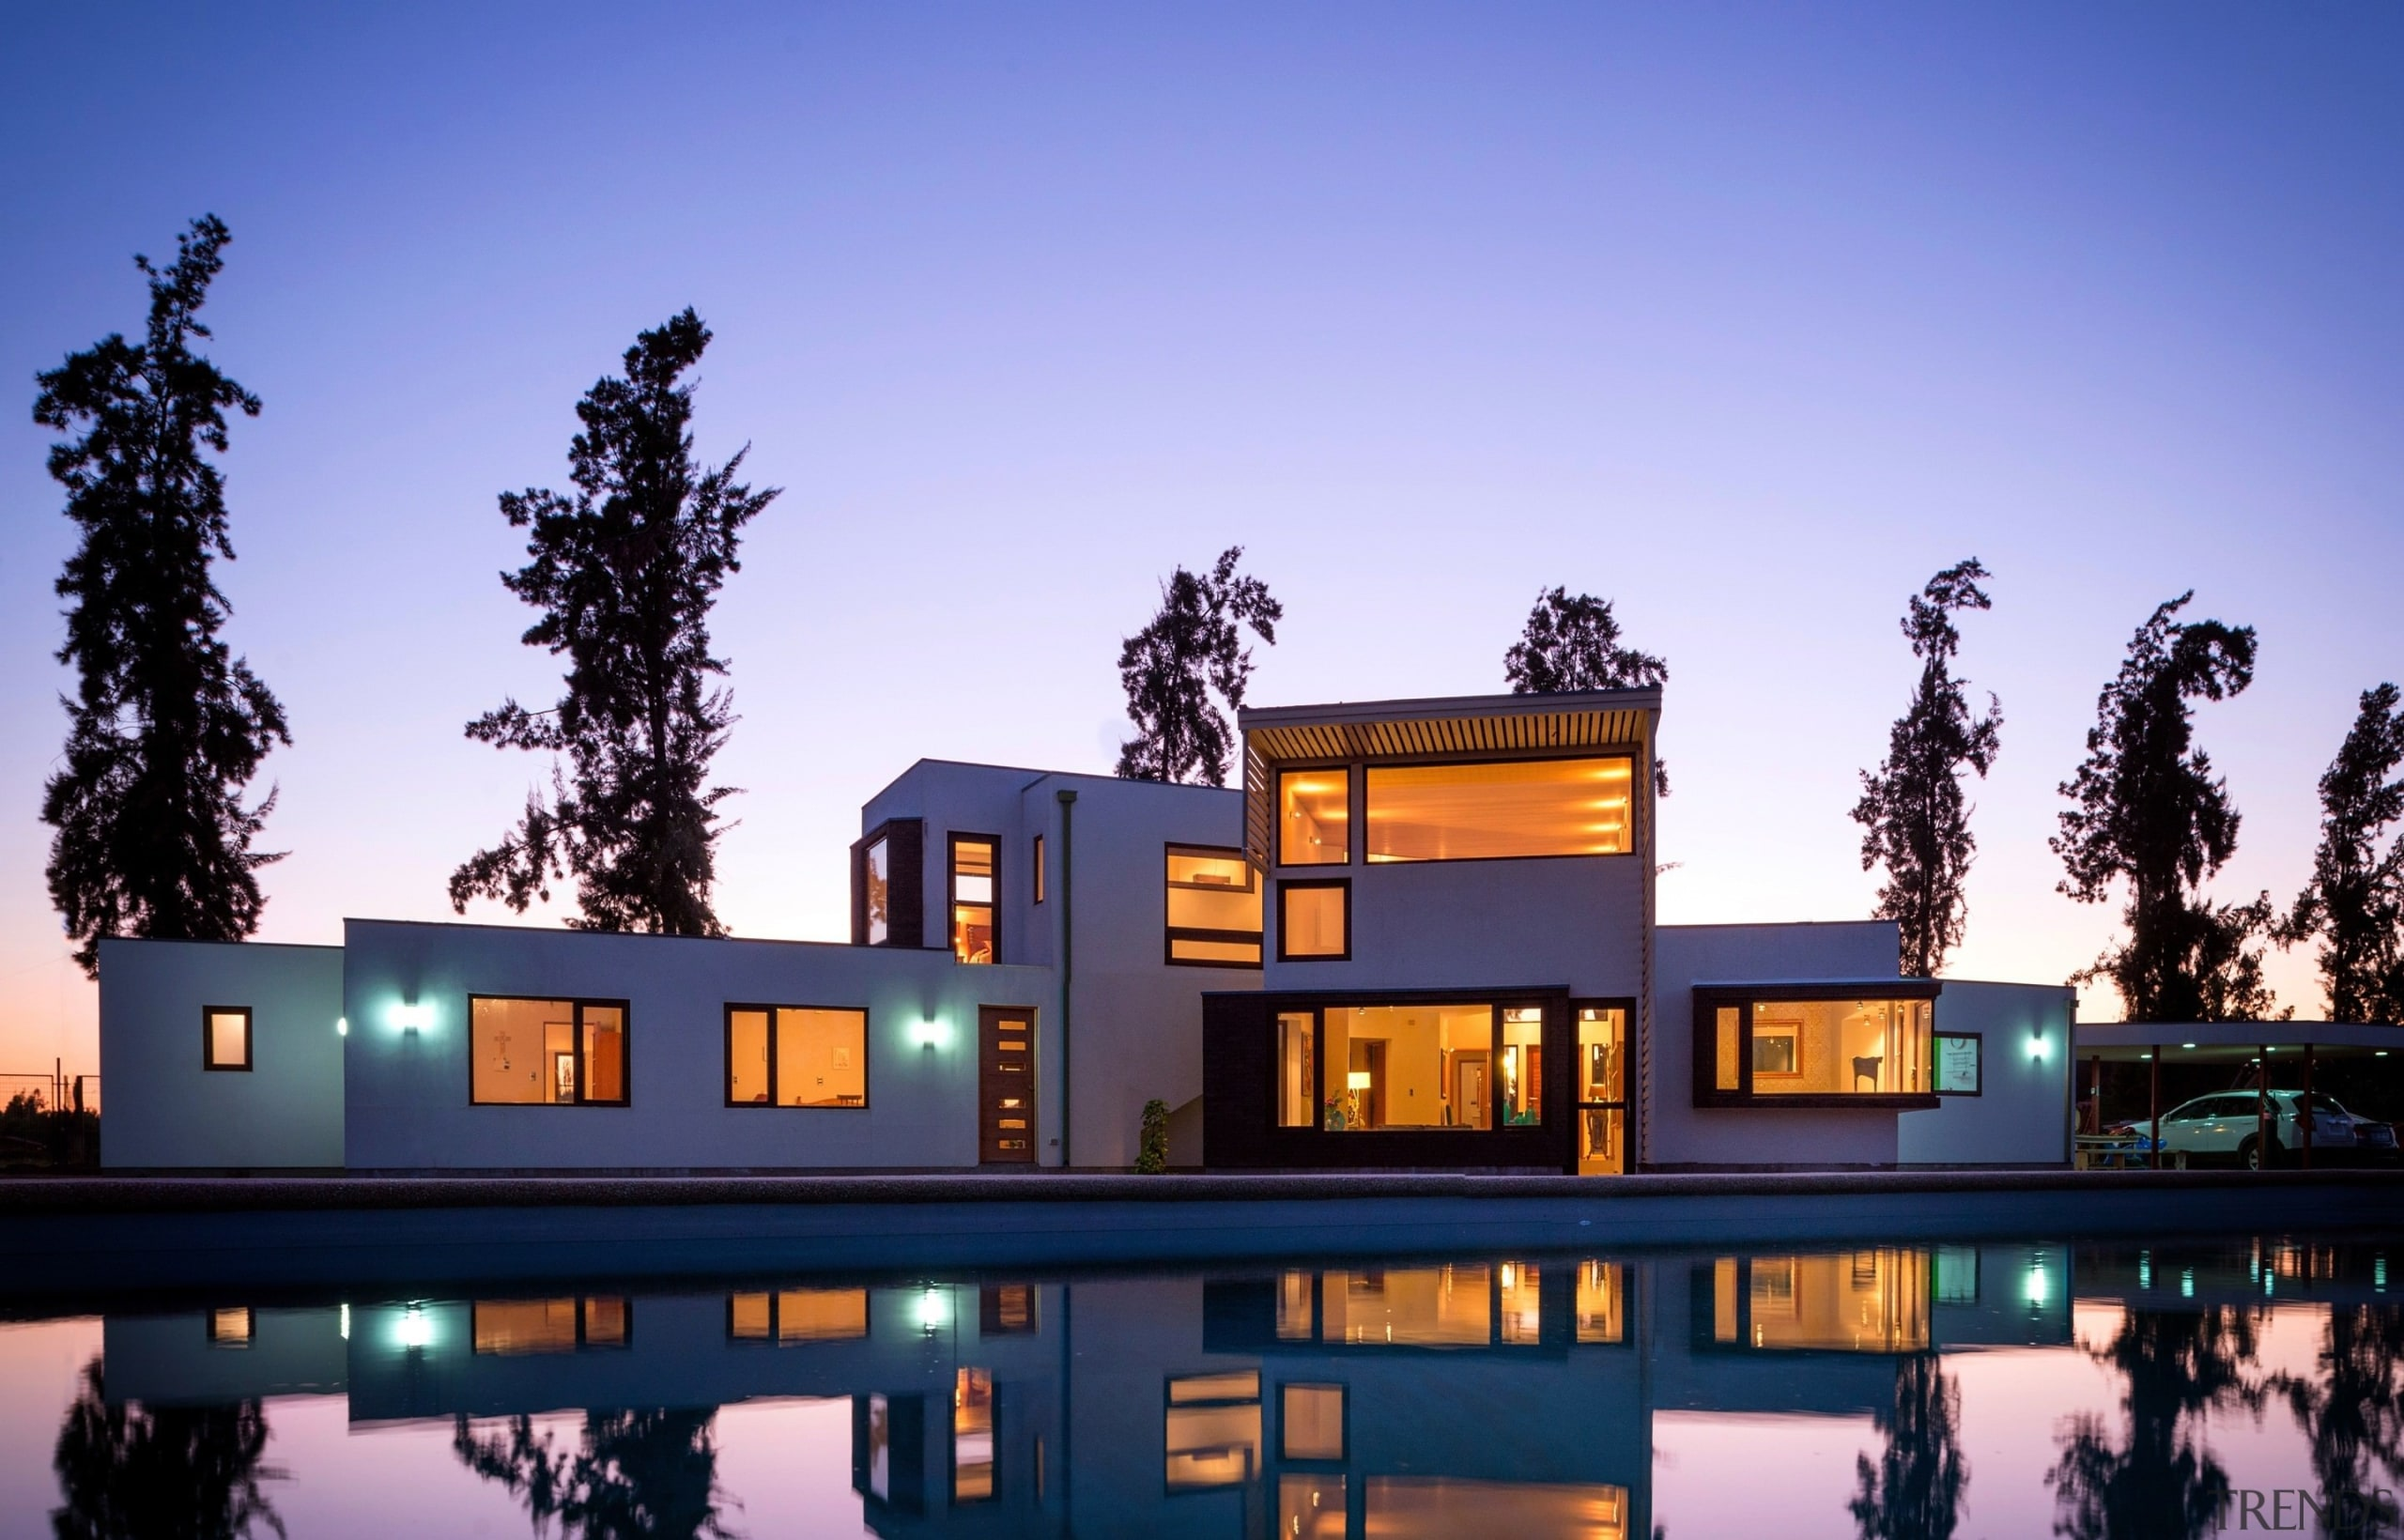 It's a home that's fit for place - architecture, estate, home, house, lighting, mixed use, property, real estate, reflection, residential area, sky, villa, blue